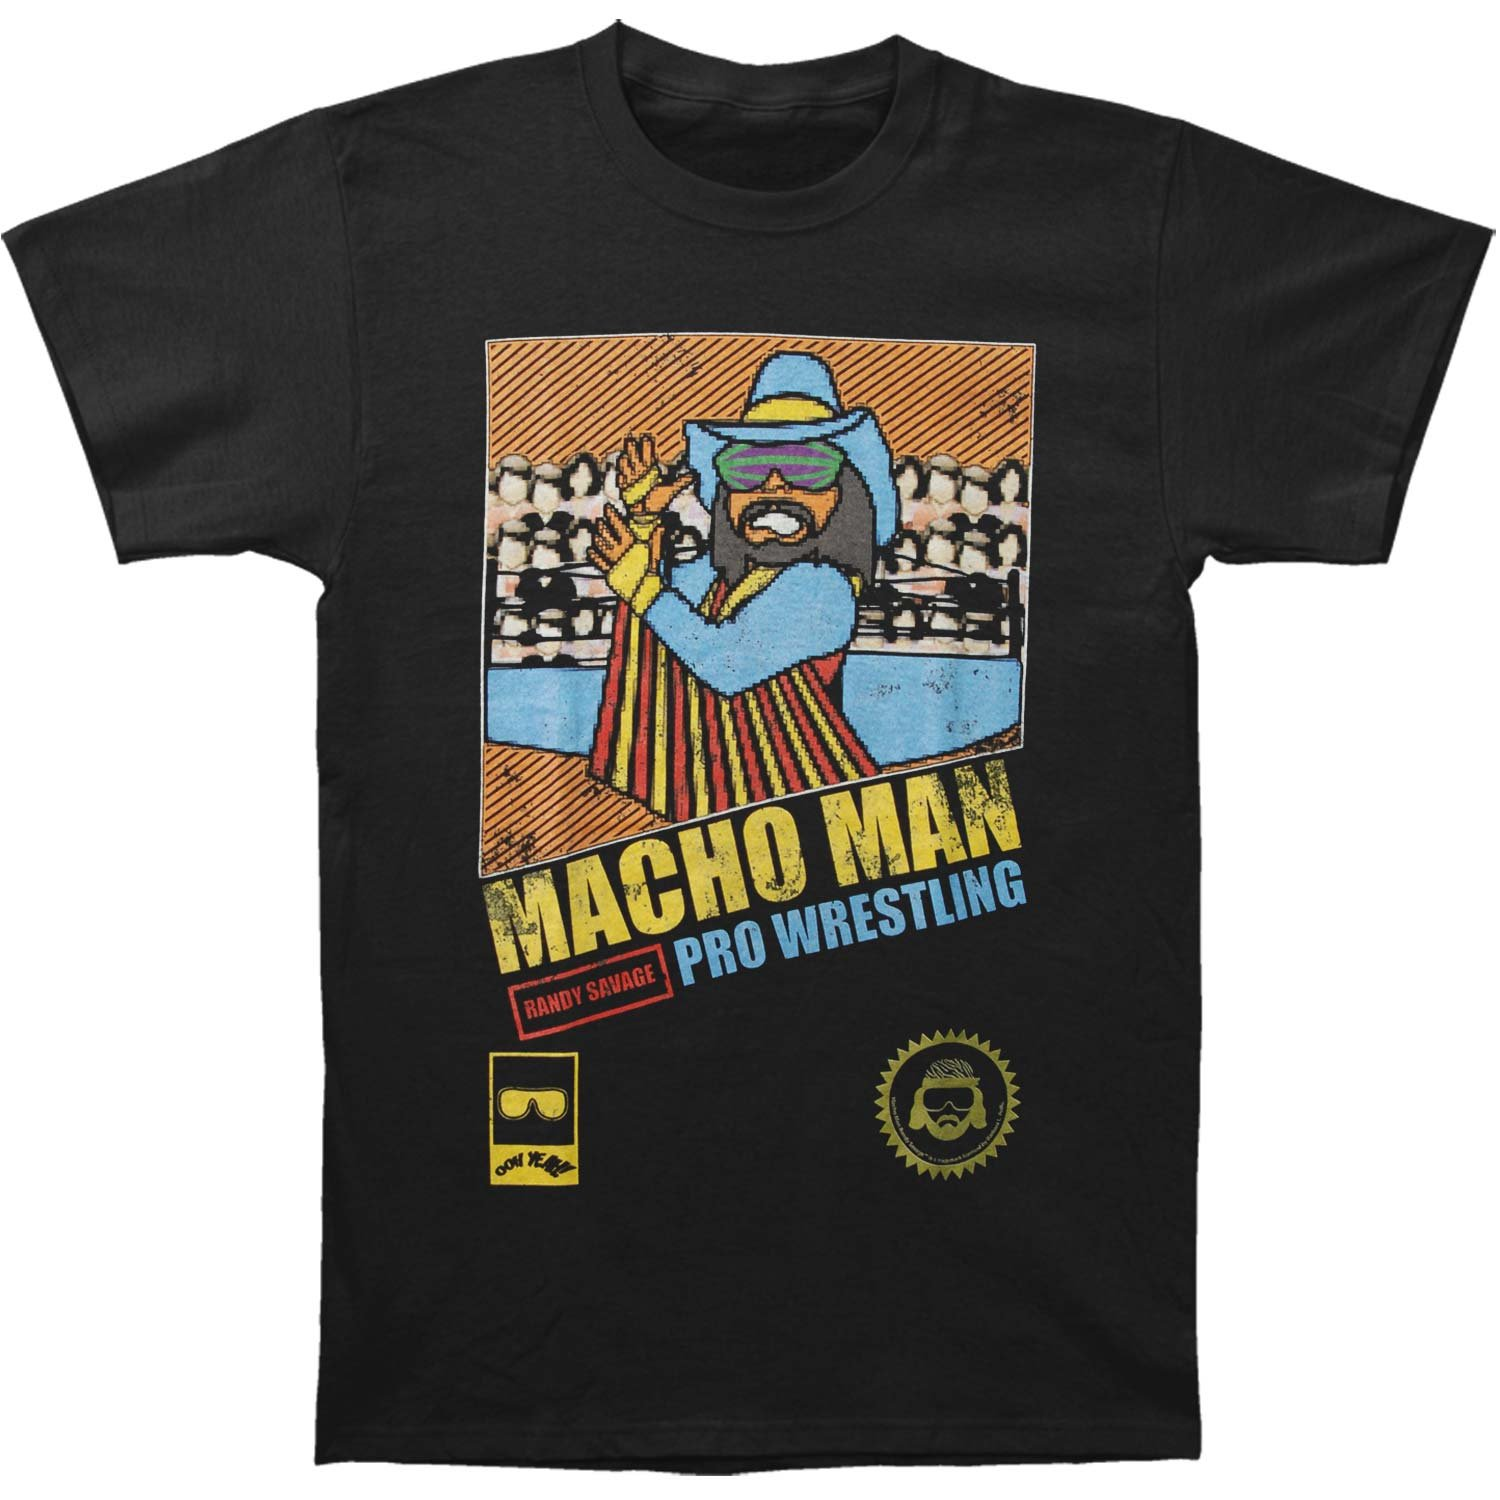 Macho Man Men's Pro Wrestling Slim Fit T-shirt XXXXX-Large Black by Macho Man